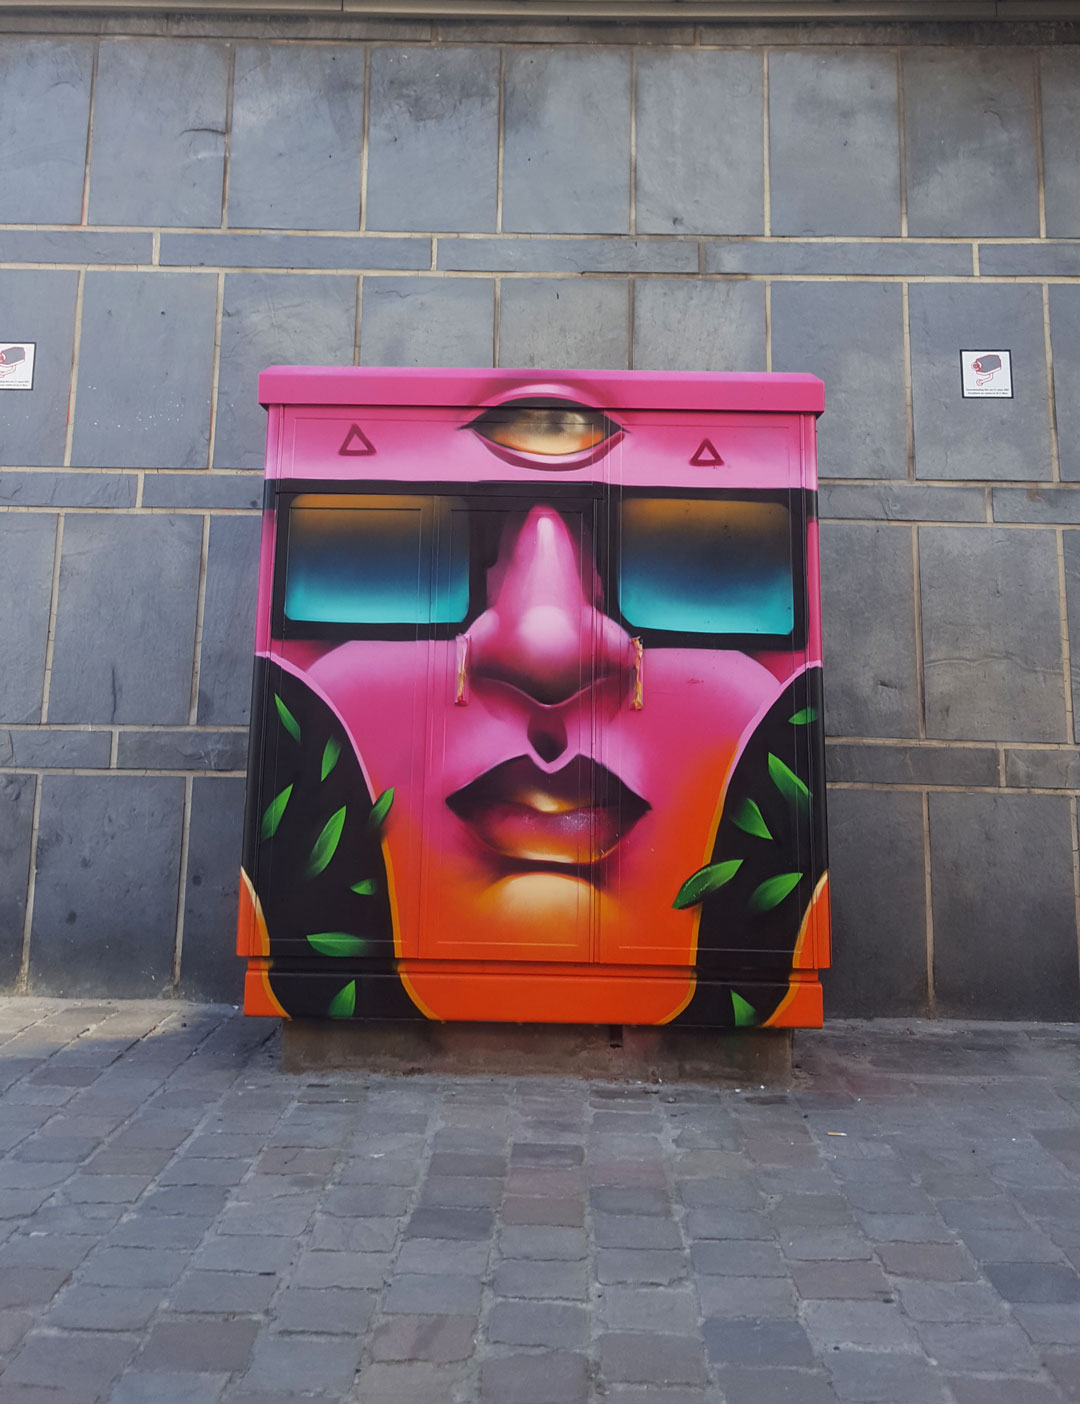 https://www.propaganza.be/wp-content/uploads/2020/02/Customisation-de-mobilier-urbain-_-artiste-DAKE-_-Ixelles-3-copie.jpg